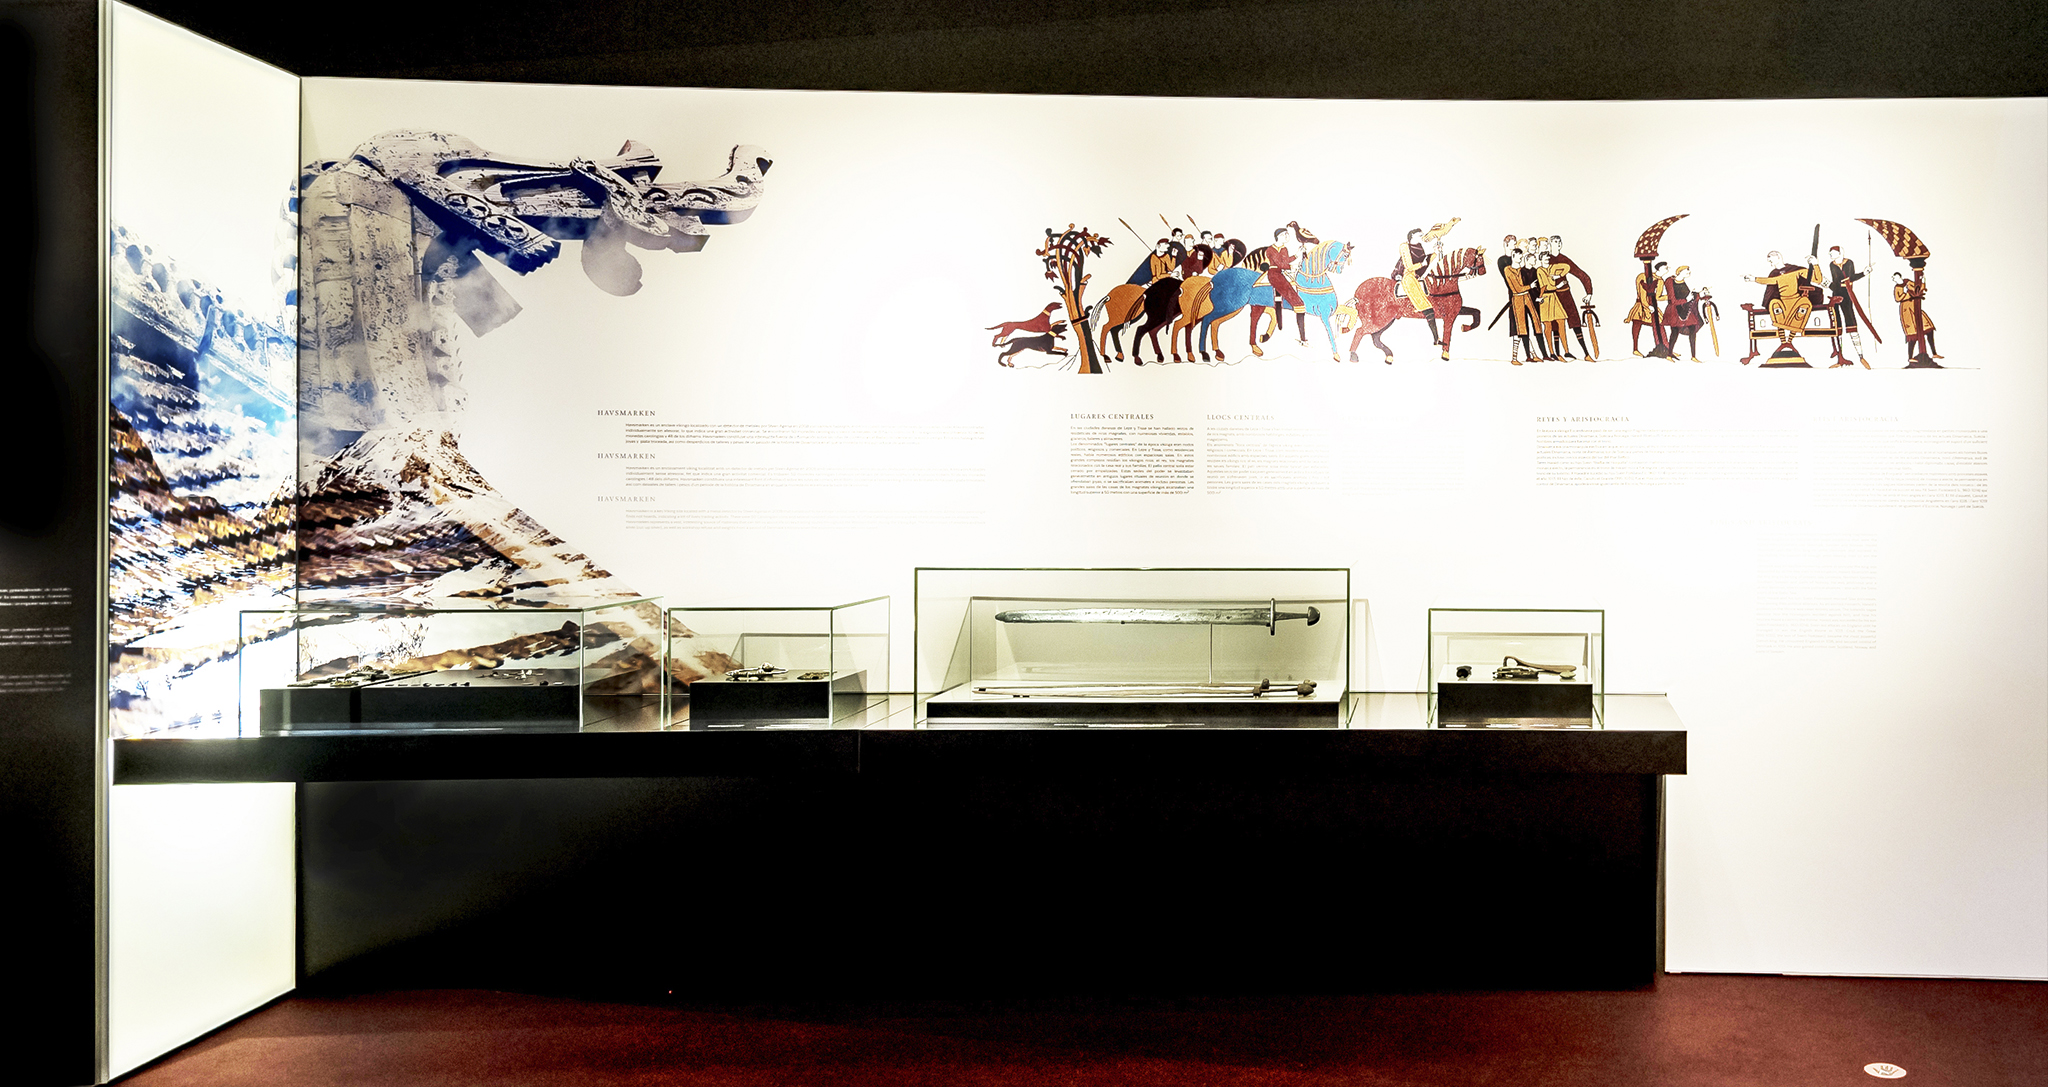 Temporary exhibition and museography design for Vikings by Rocamora Arquitectura Elche Alicante Spain